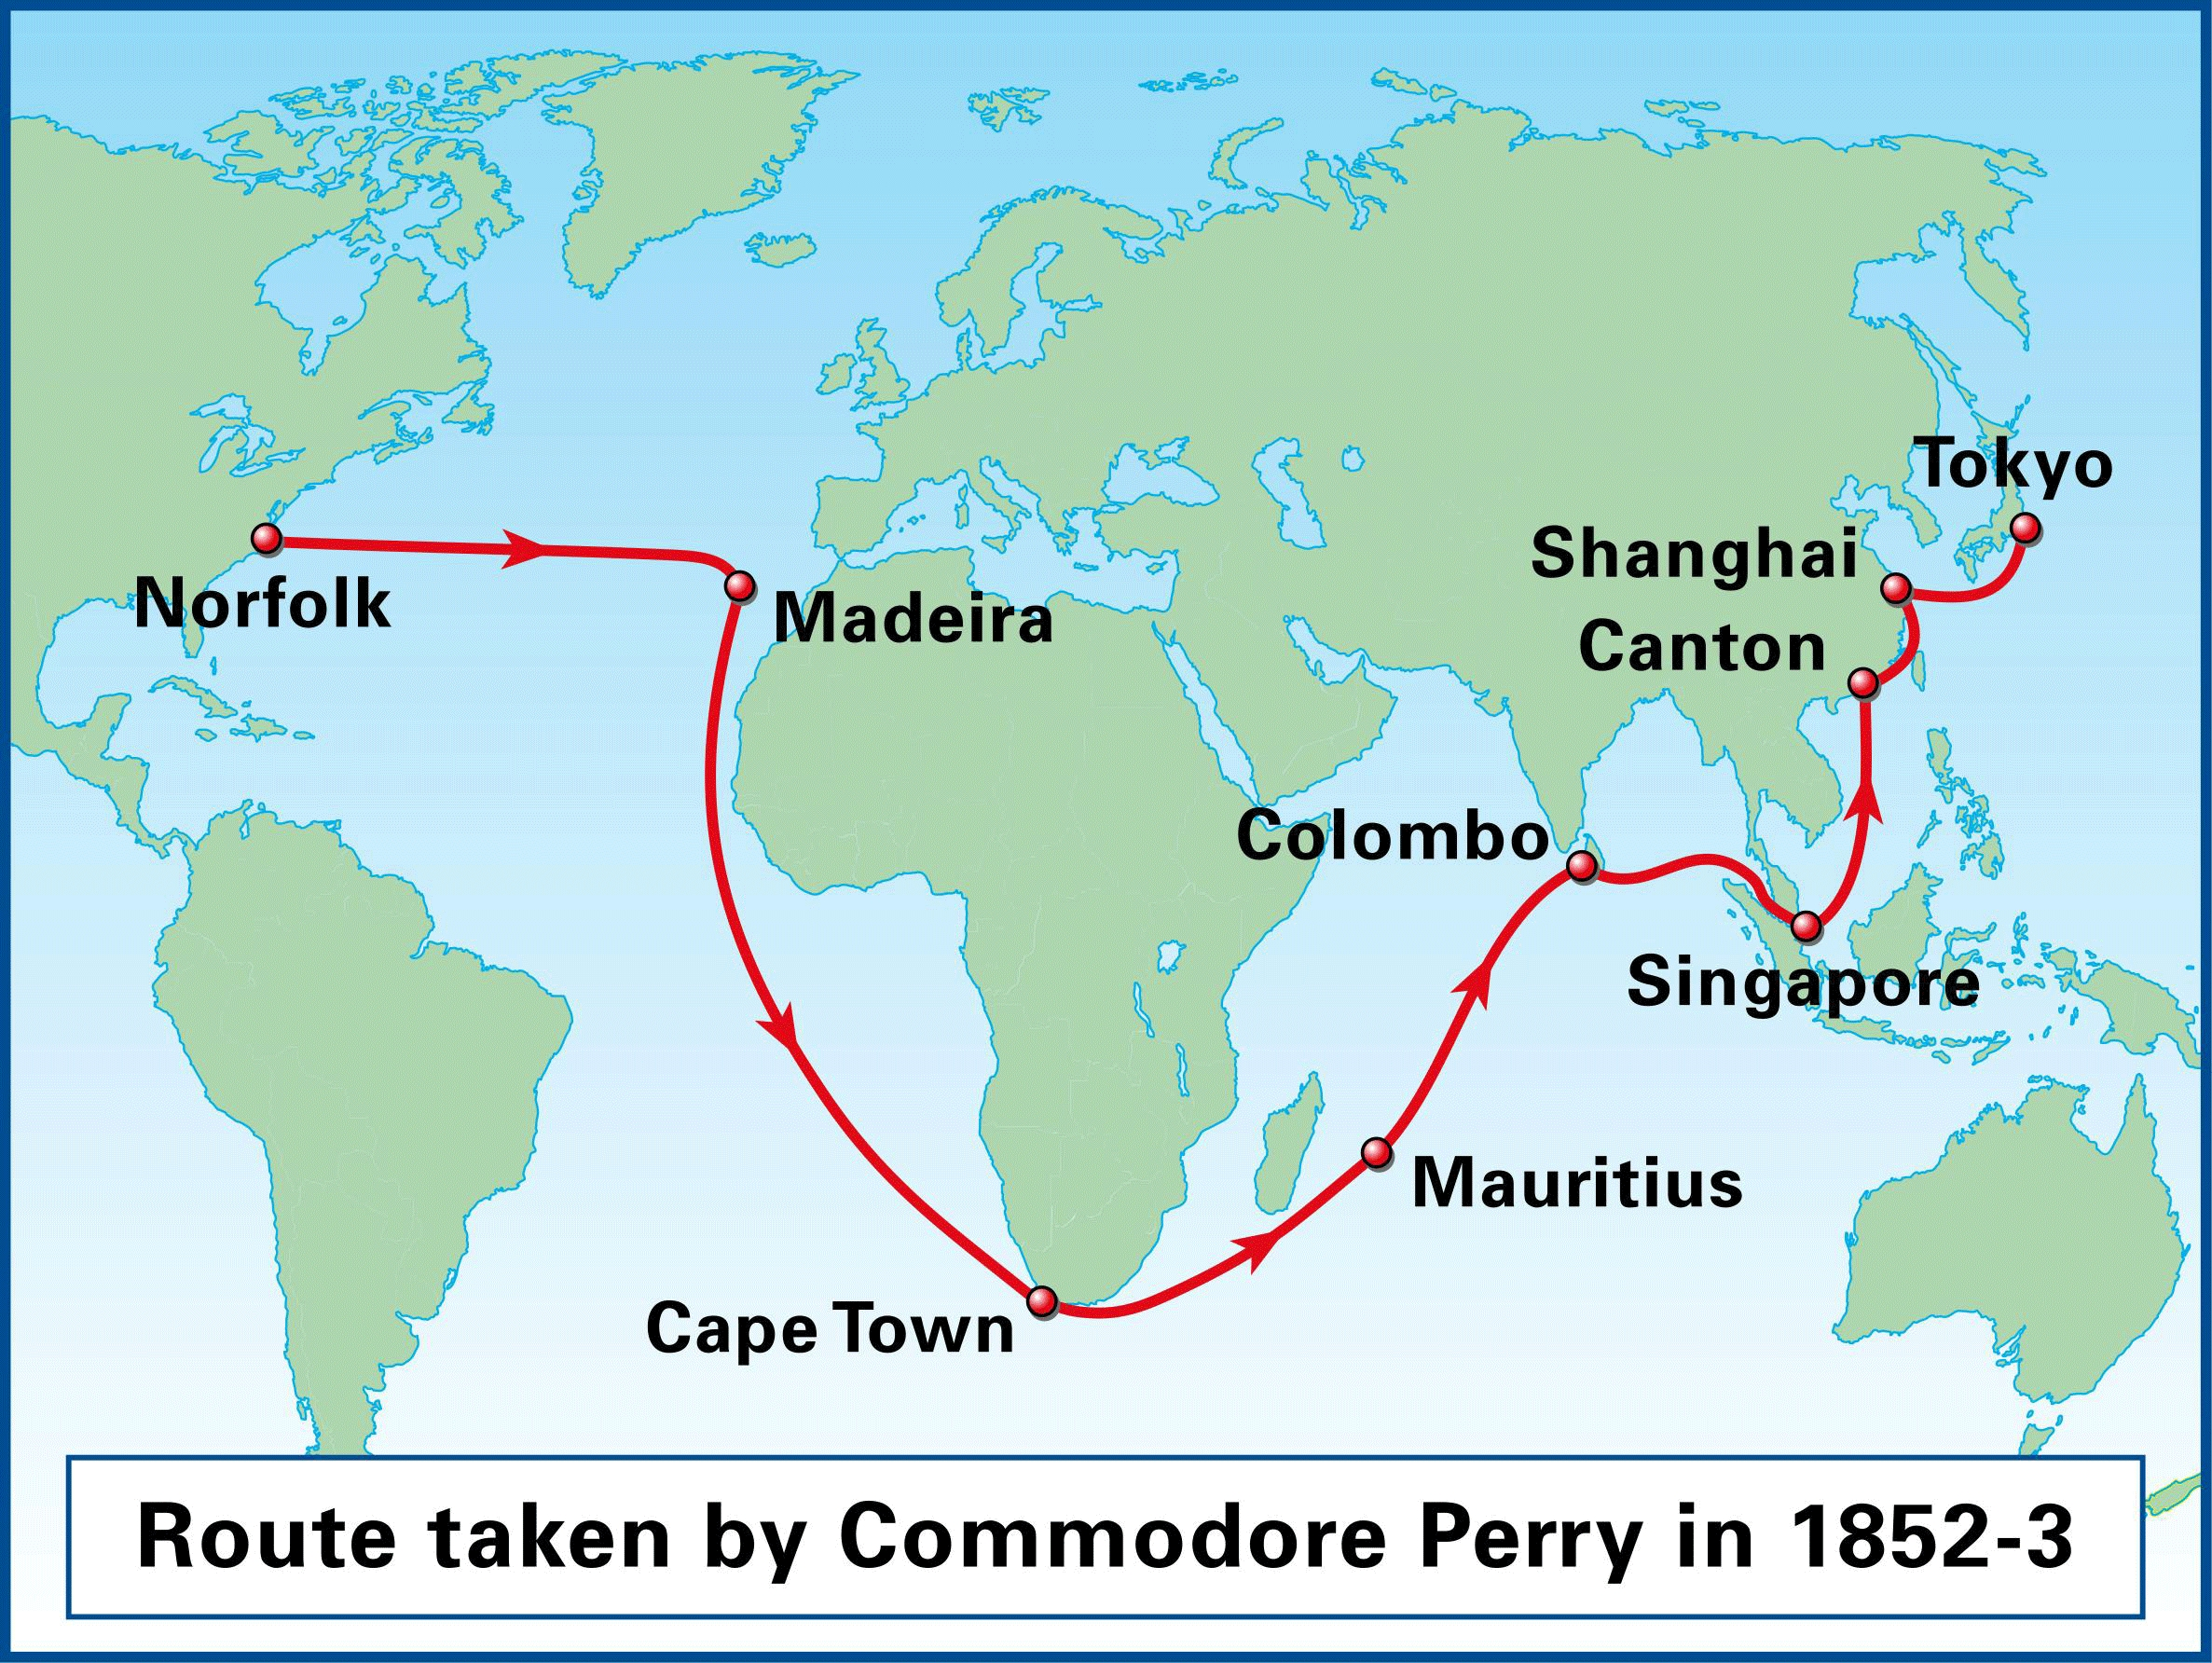 Route taken by Commodore Matthew Perry and the East Asia Fleet from Norfolk, Virginia, to Edo Bay, Japan, November 1852 to July 1853.